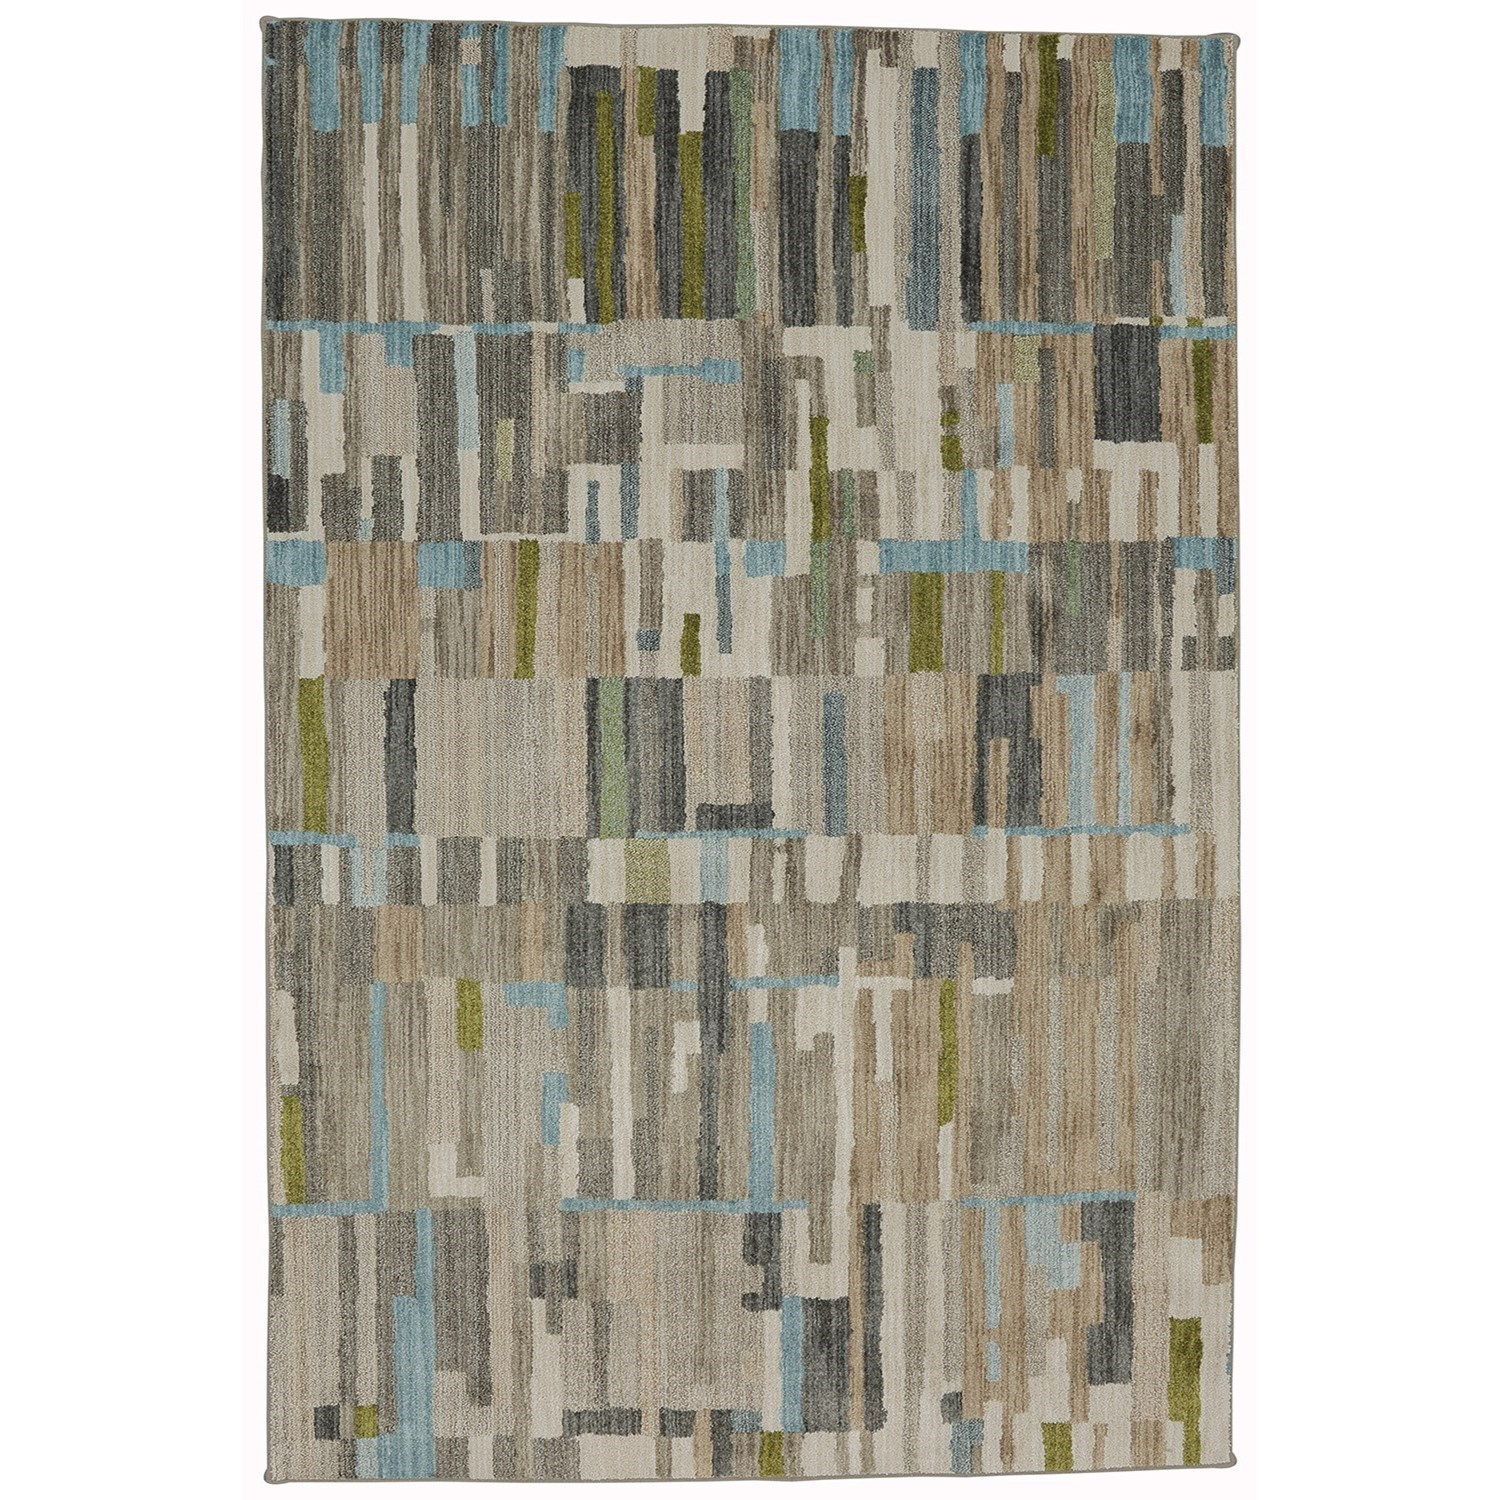 Muse 8'x11' Bacchus Lagoon Area Rug by American Rug Craftsmen at Alison Craig Home Furnishings